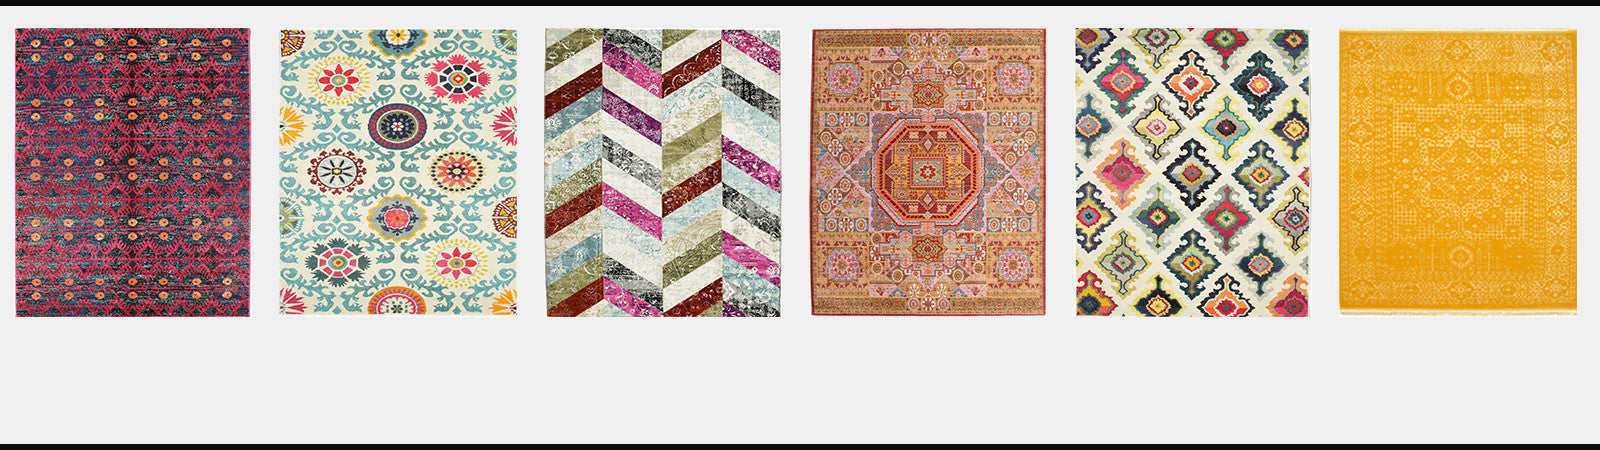 Buy New Arrivals Vibrant Colour Spring Rugs